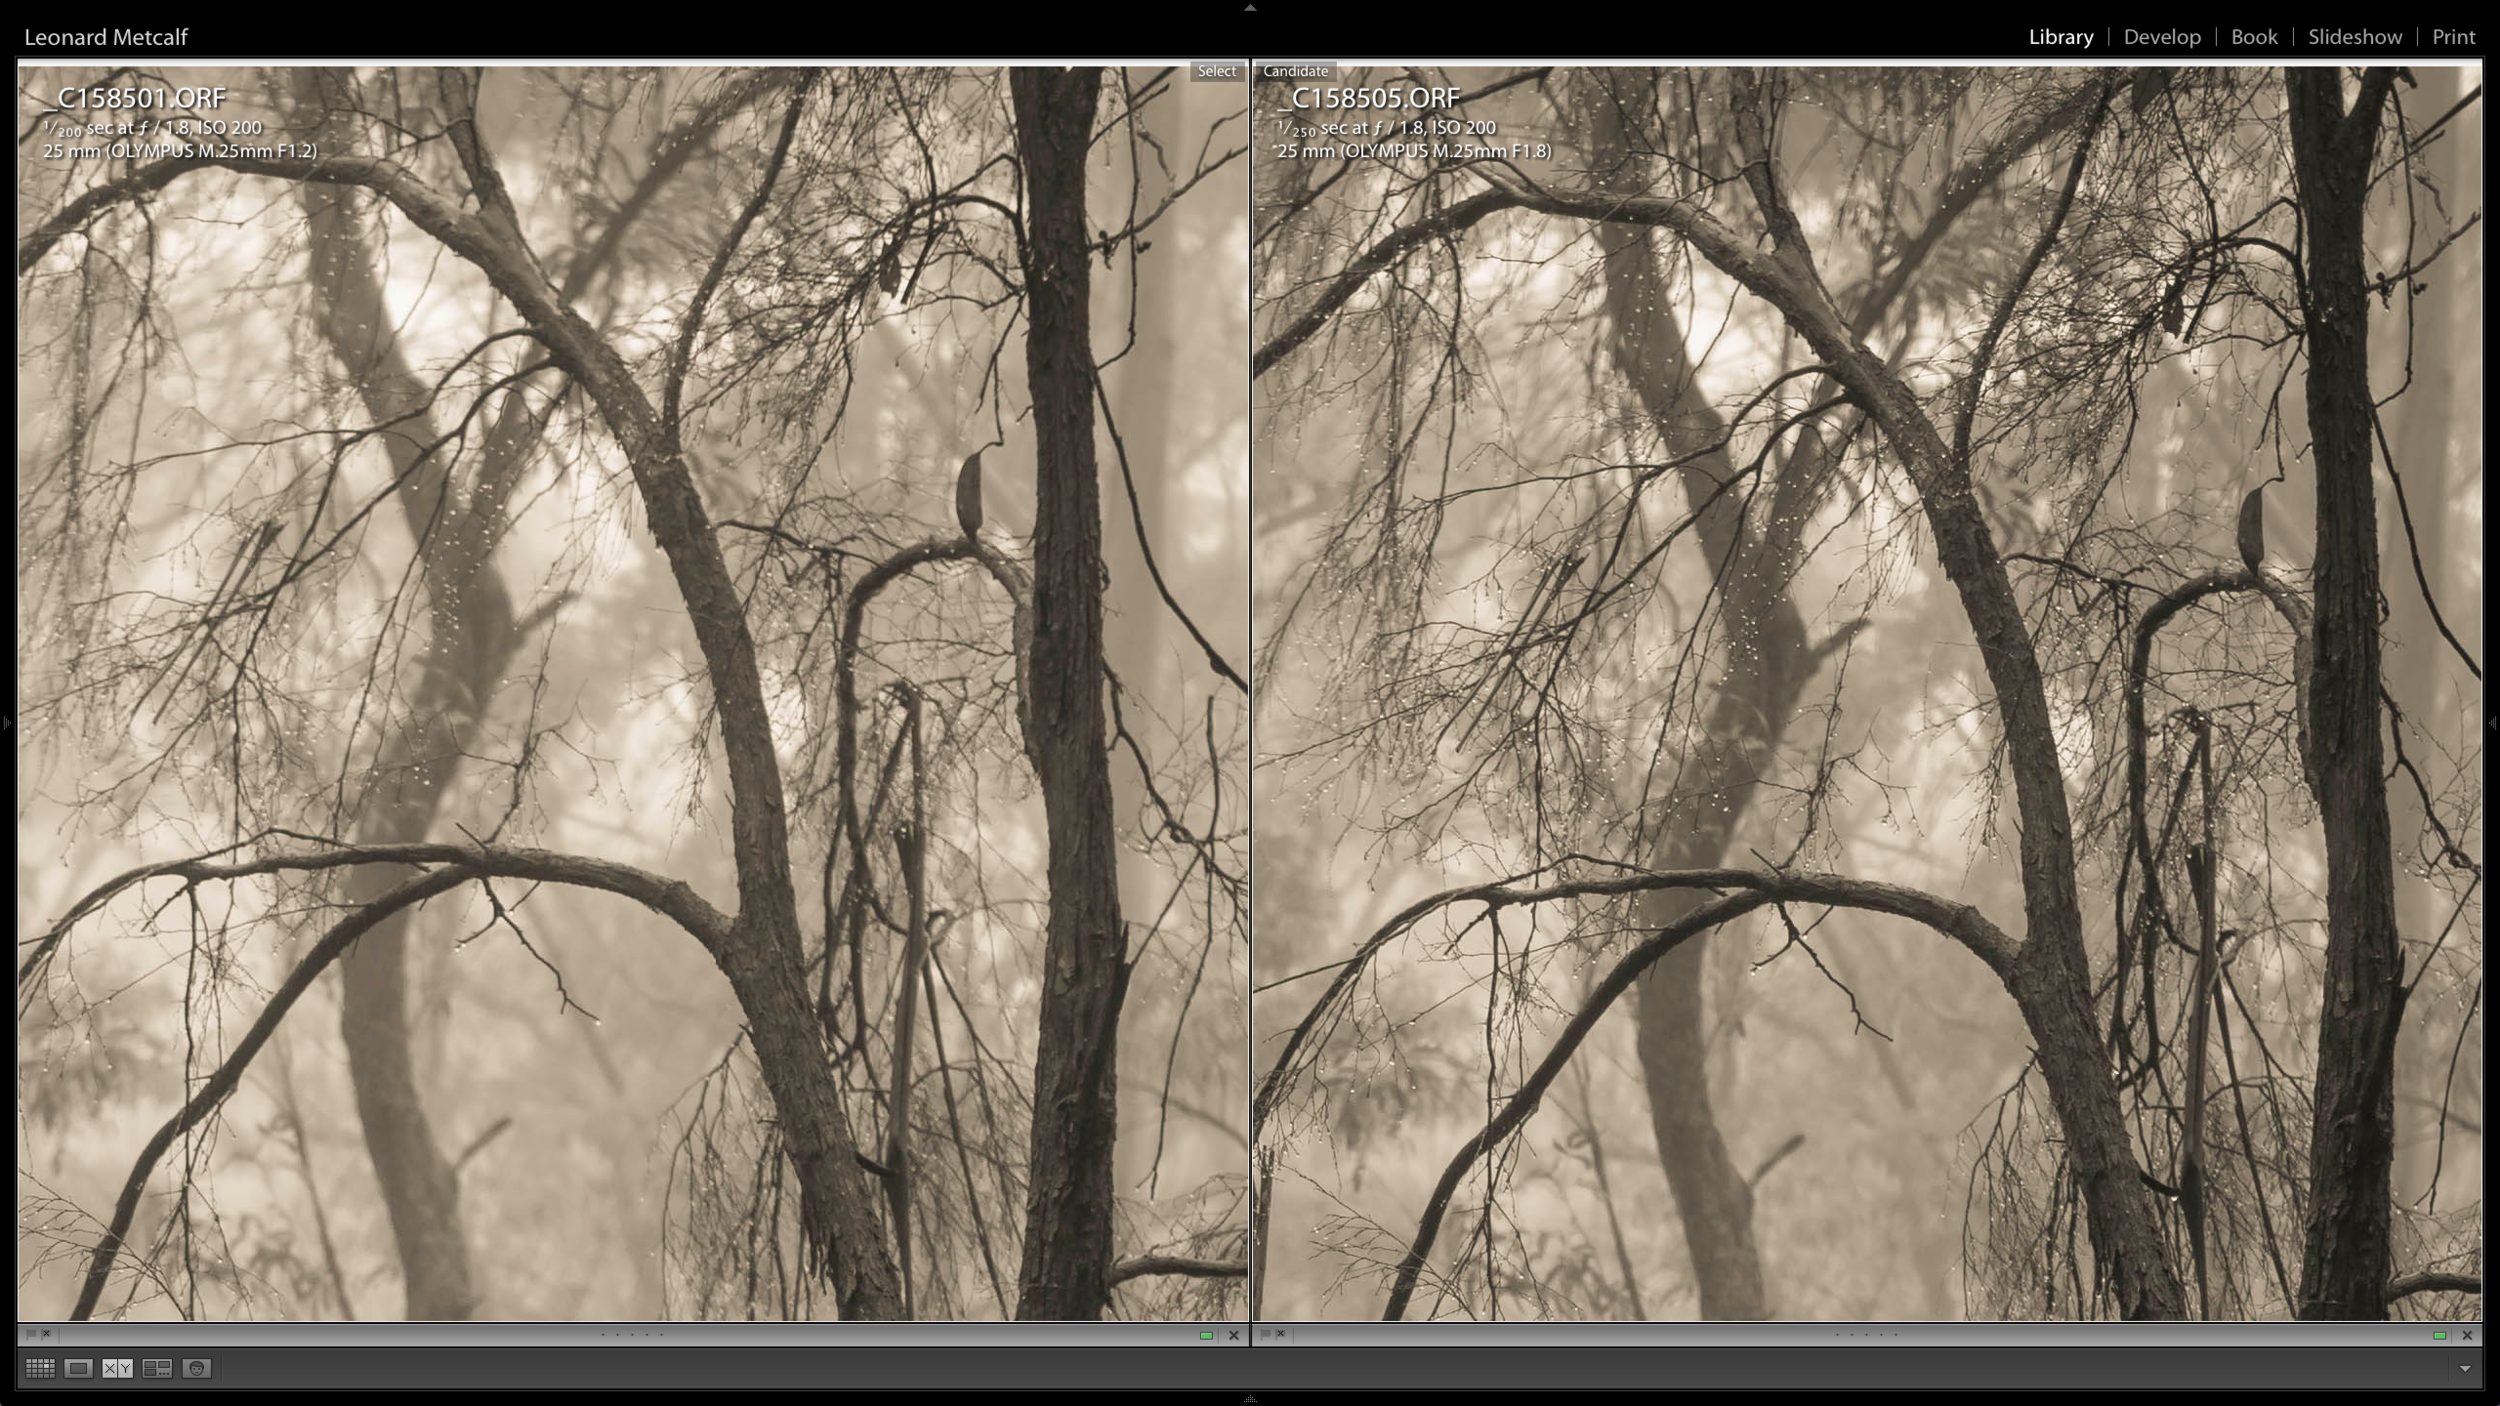 Olympus 25mm f1.2 on left and Olympus 25mm f1.8 on right both shot at f 1.8 - The f1.8 appears to have better micro contrast, while the f1.2 Pro version has smoother out of focus areas. I can't pick the difference in sharpness.